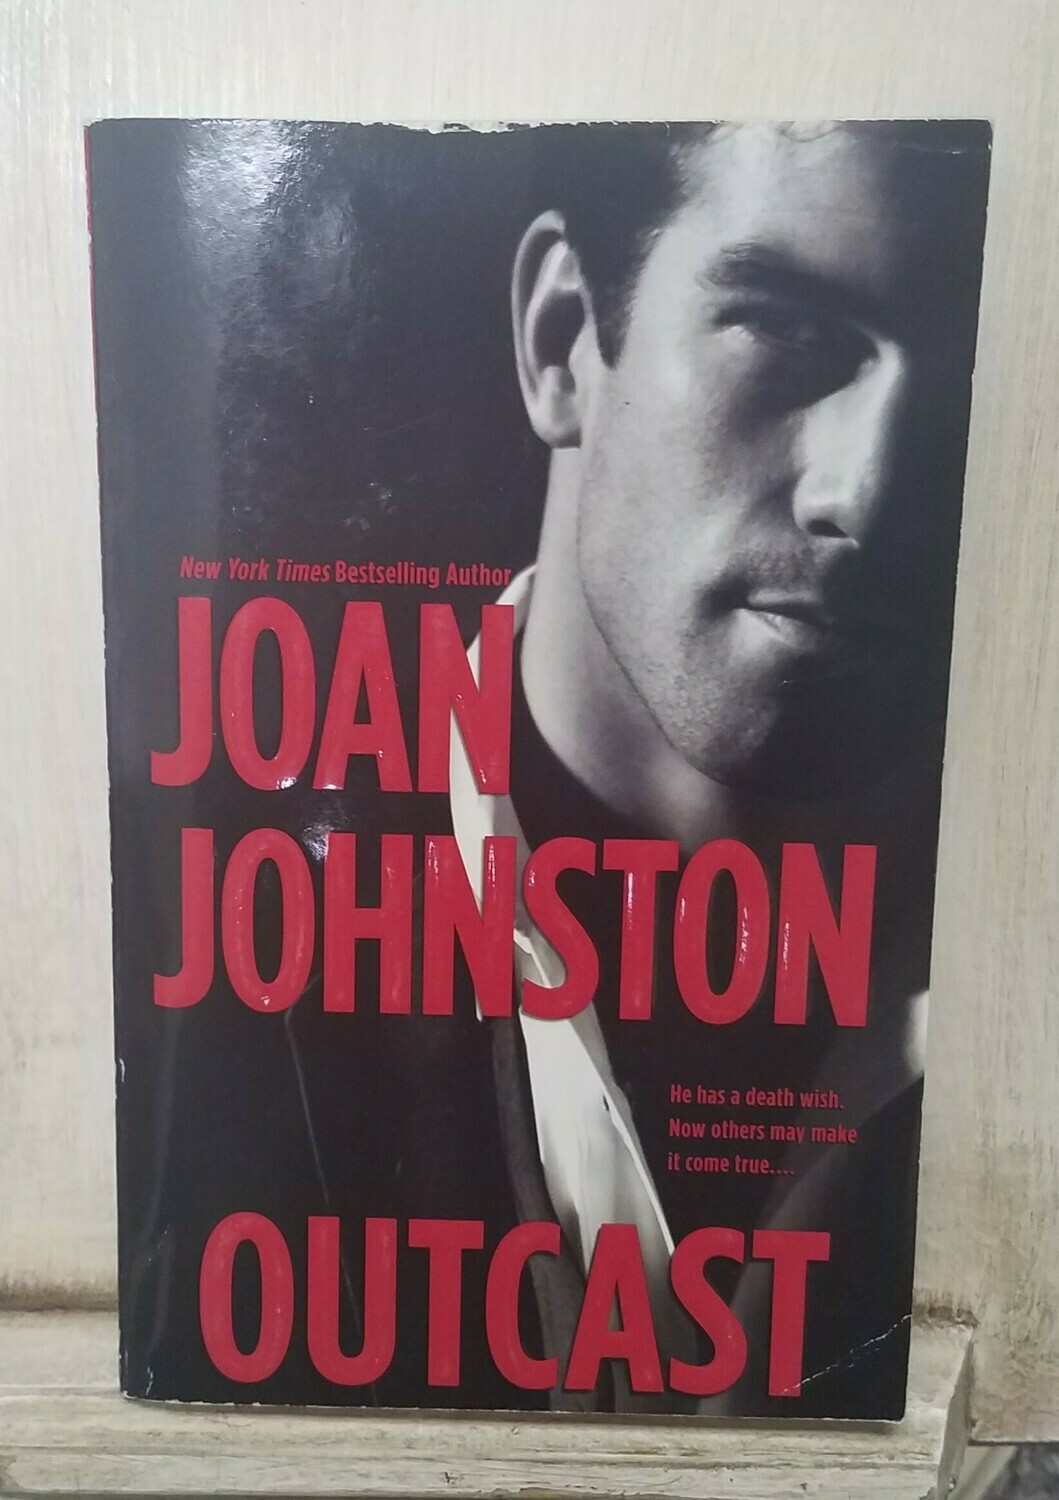 Outcast by Joan Johnston